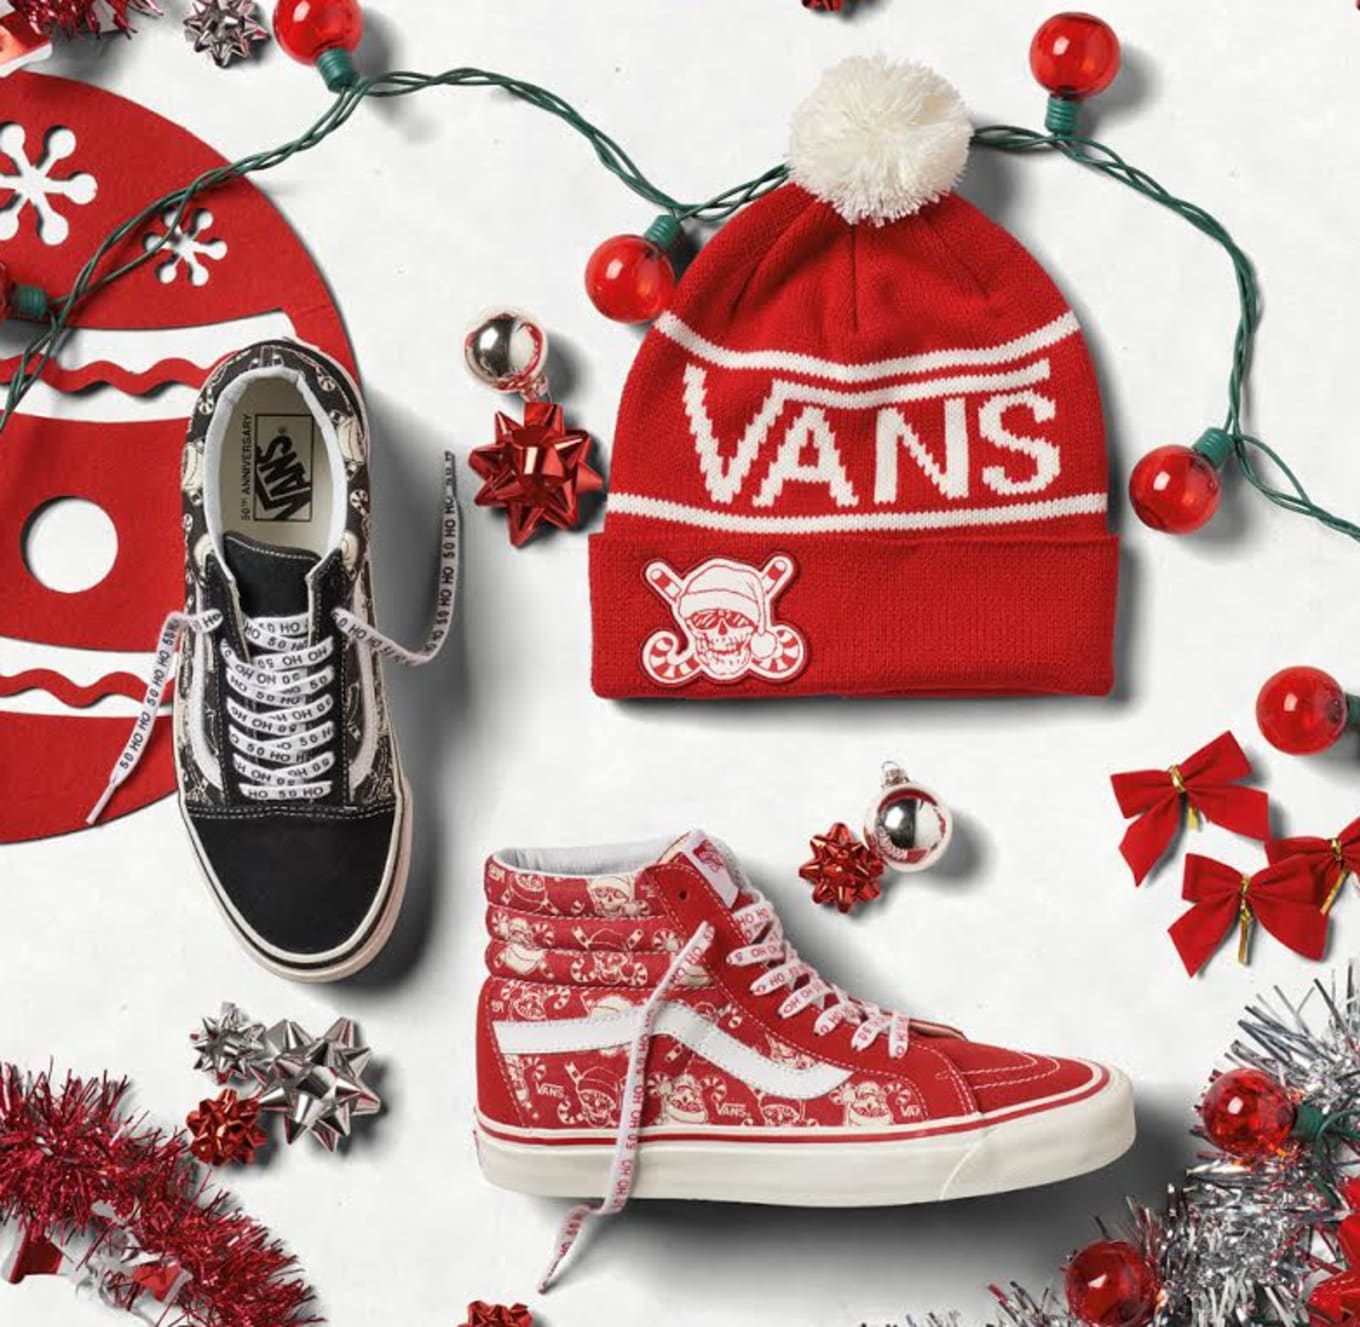 Vans Van Doren Holiday 2016 Collection | Sole Collector